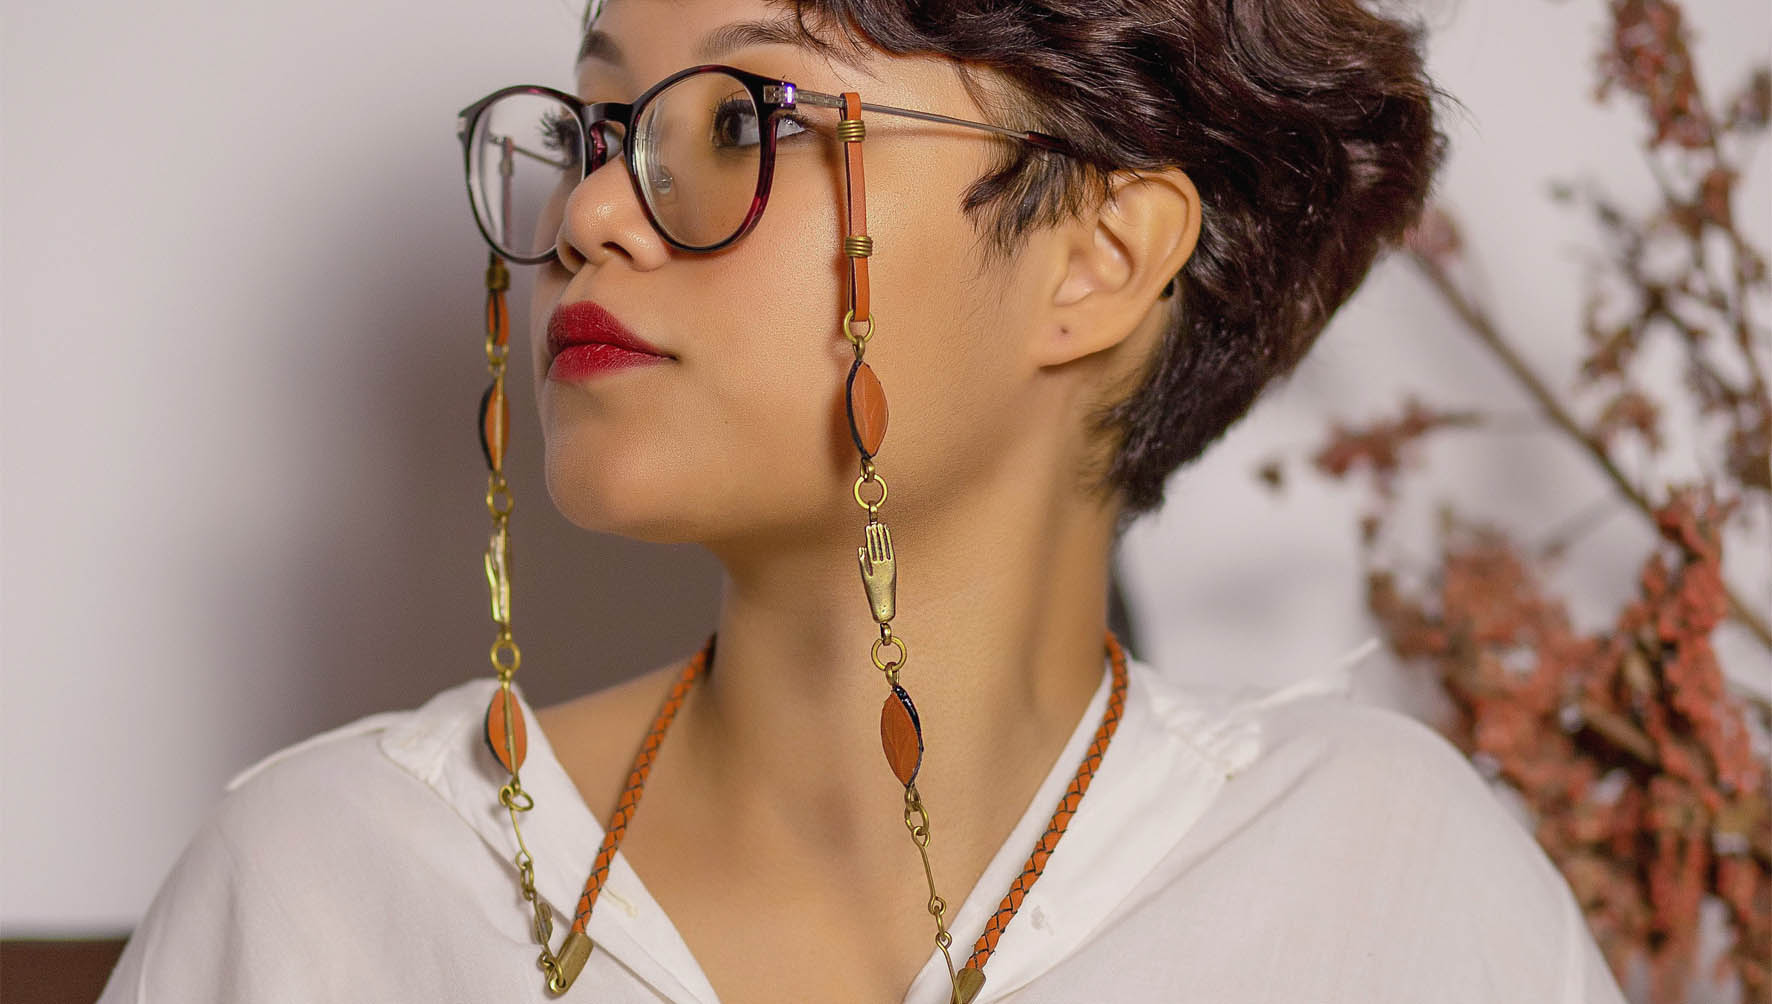 Winter Pharaonic Collection - Pharaonic Hands Glasses Chain Holder